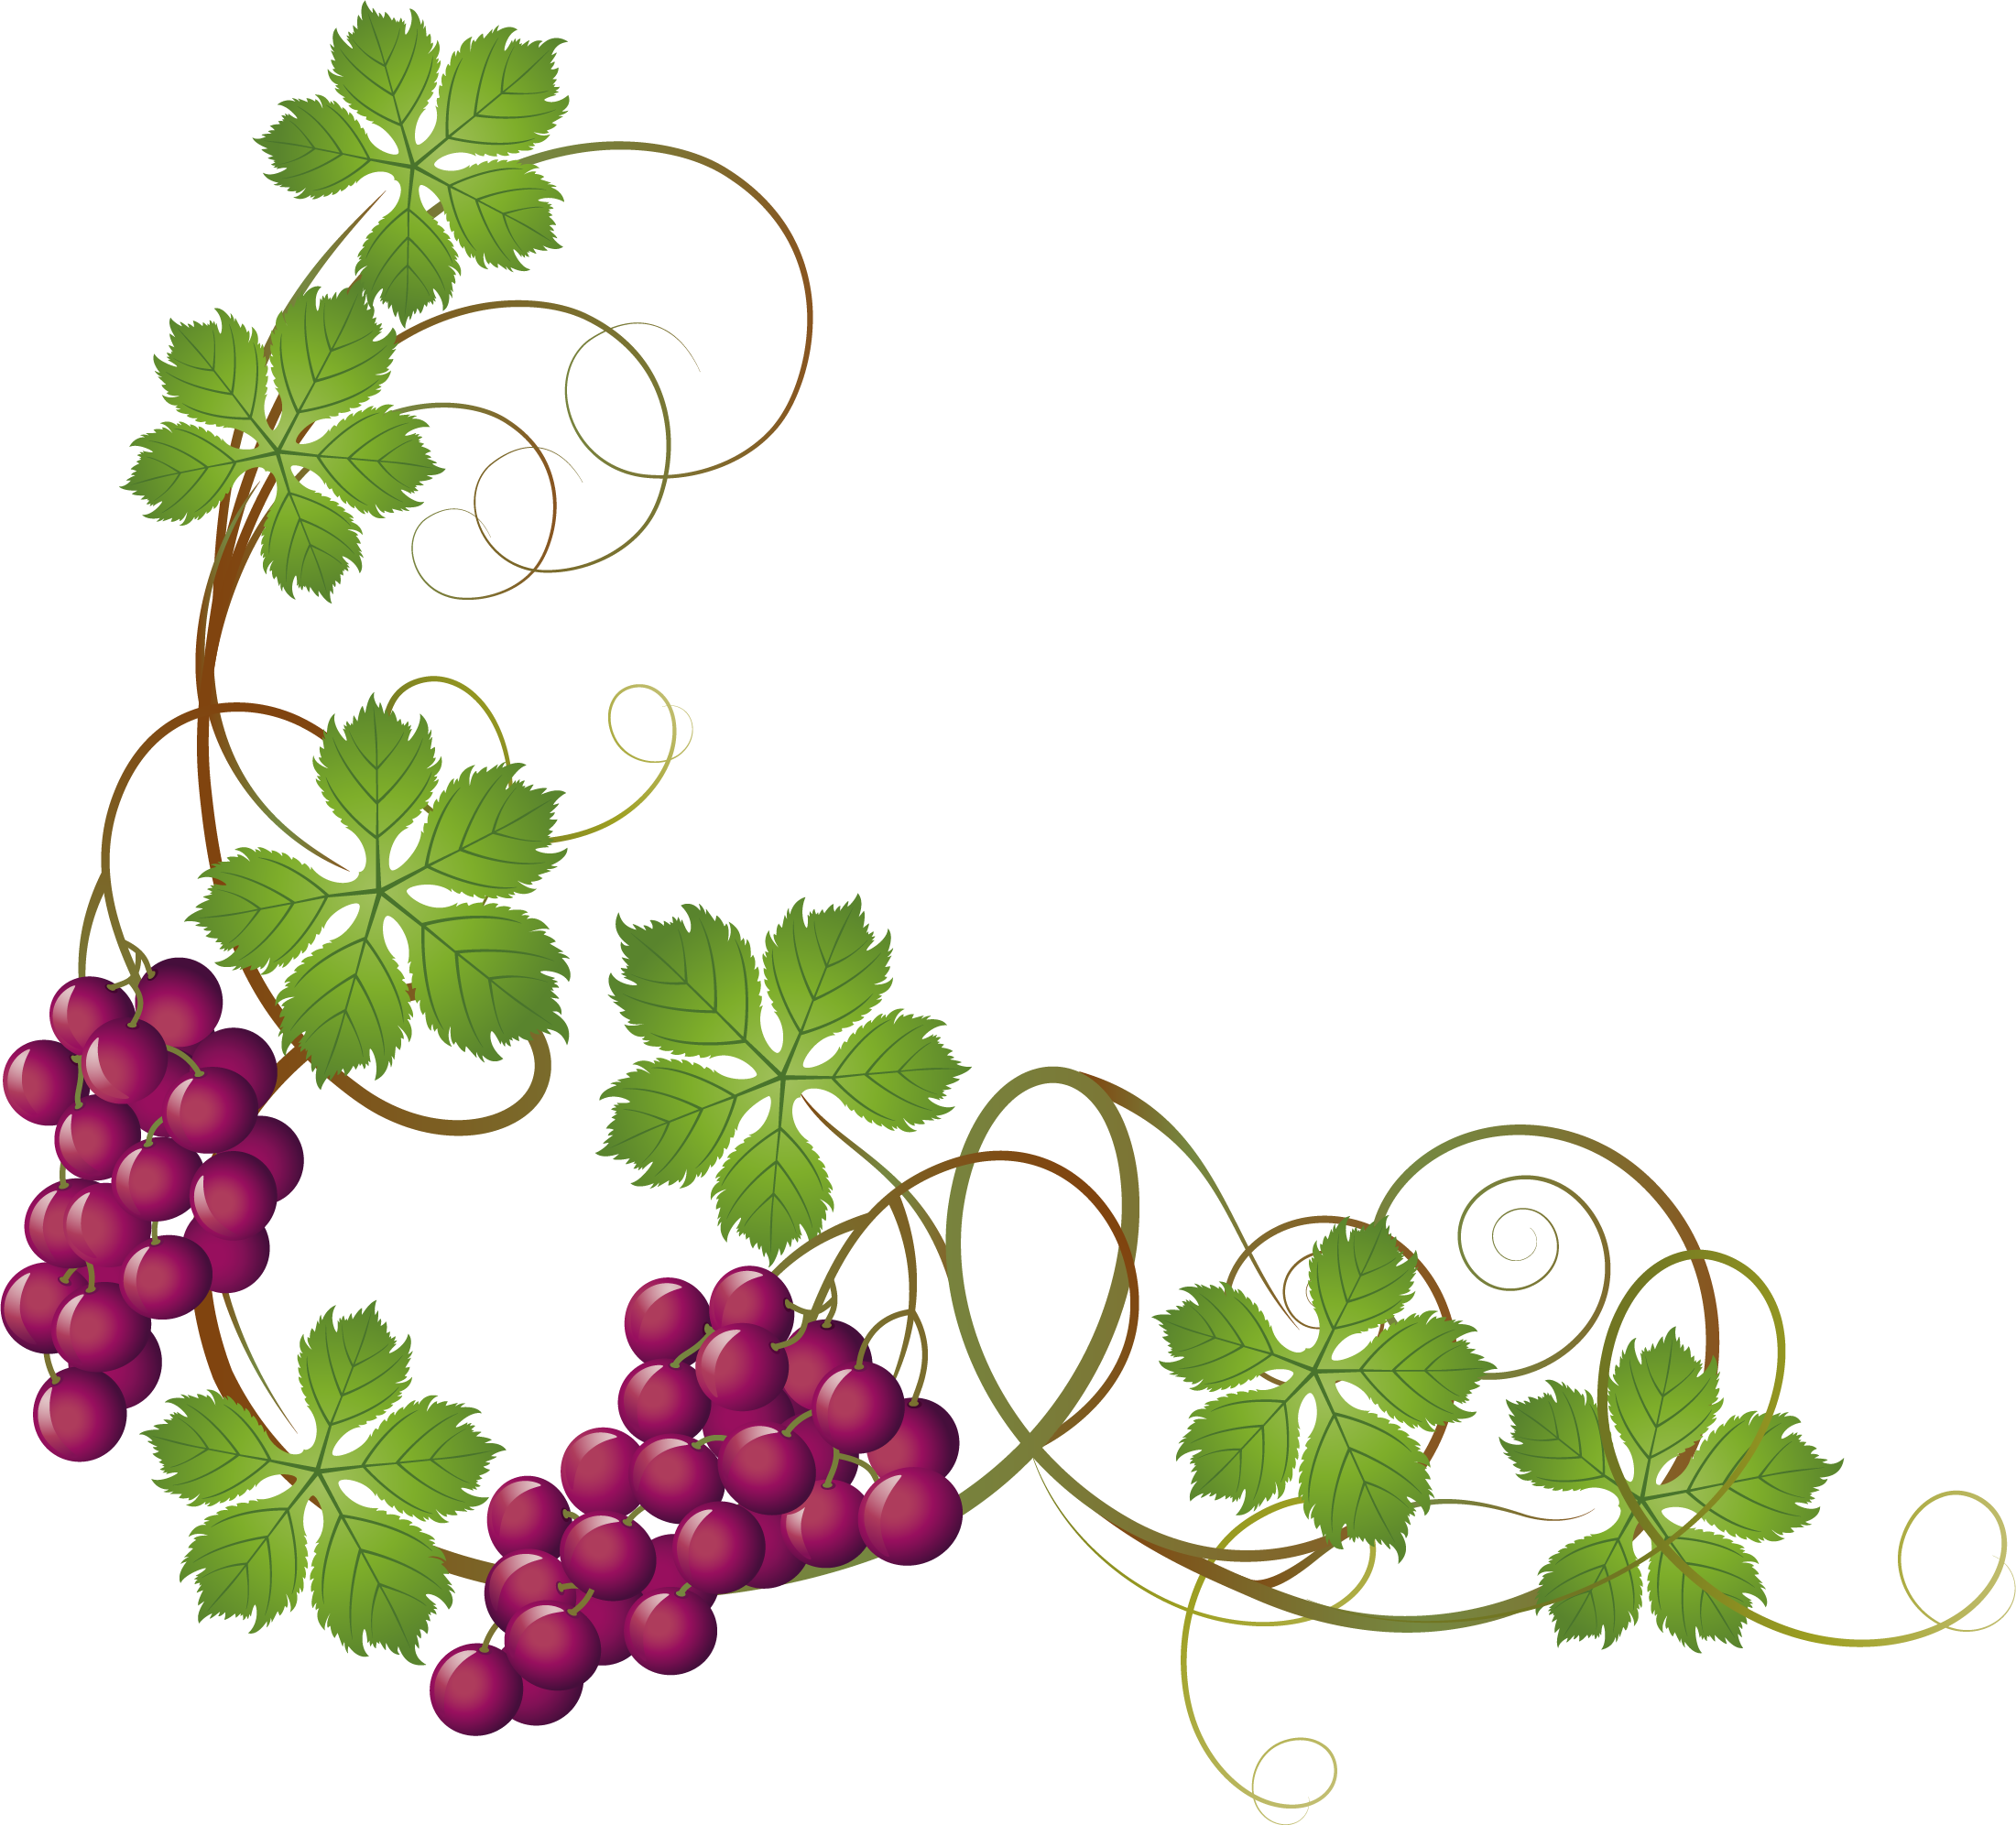 Pumpkin and vine clipart picture royalty free download Grape Vine Clipart at GetDrawings.com | Free for personal use Grape ... picture royalty free download